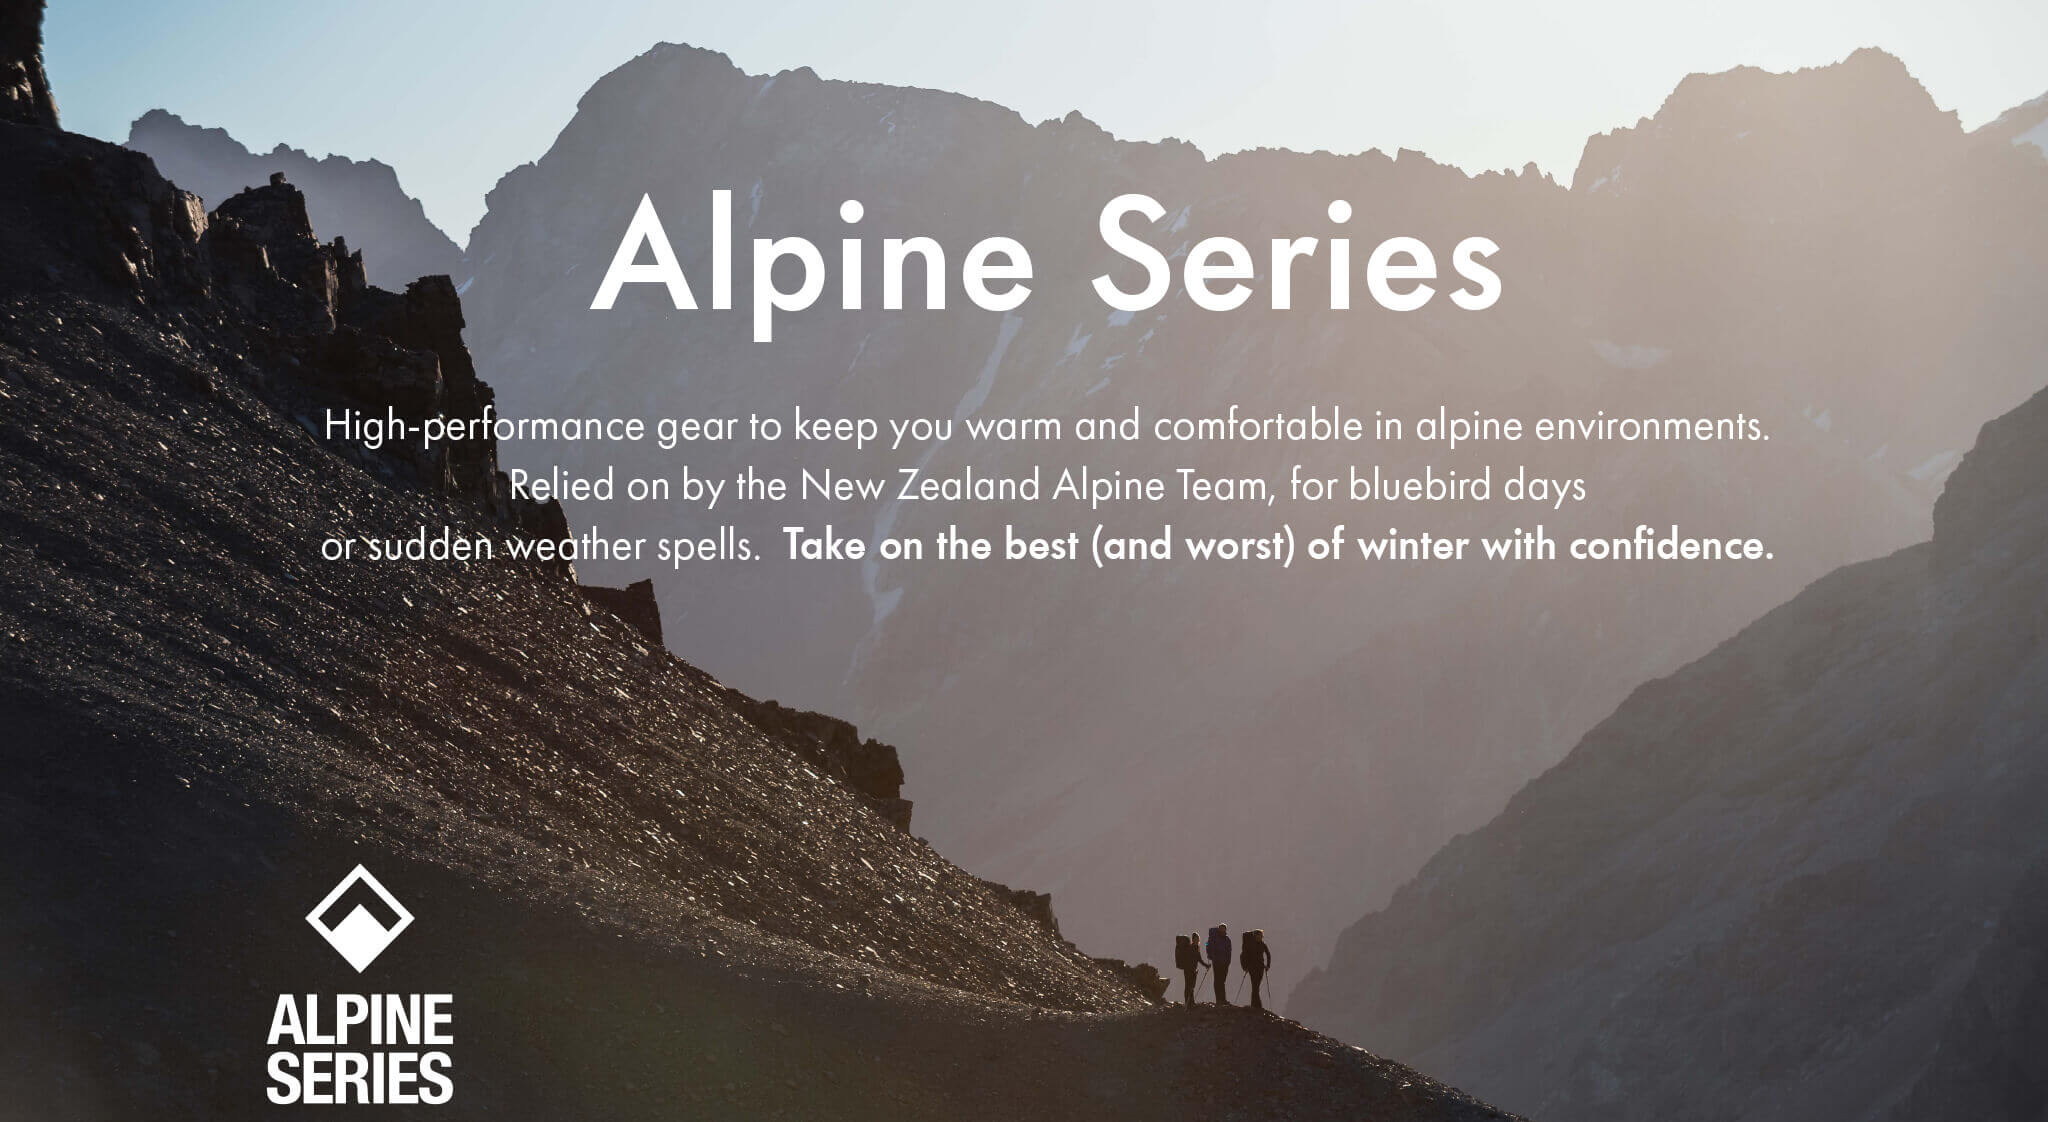 Alpine Series - High-performance gear to keep you warm and comfortable in alpine environments. Relied on by the New Zealand Alpine Team, for bluebird days or sudden weather spells. Take on the best (and worst) of winter with confidence.